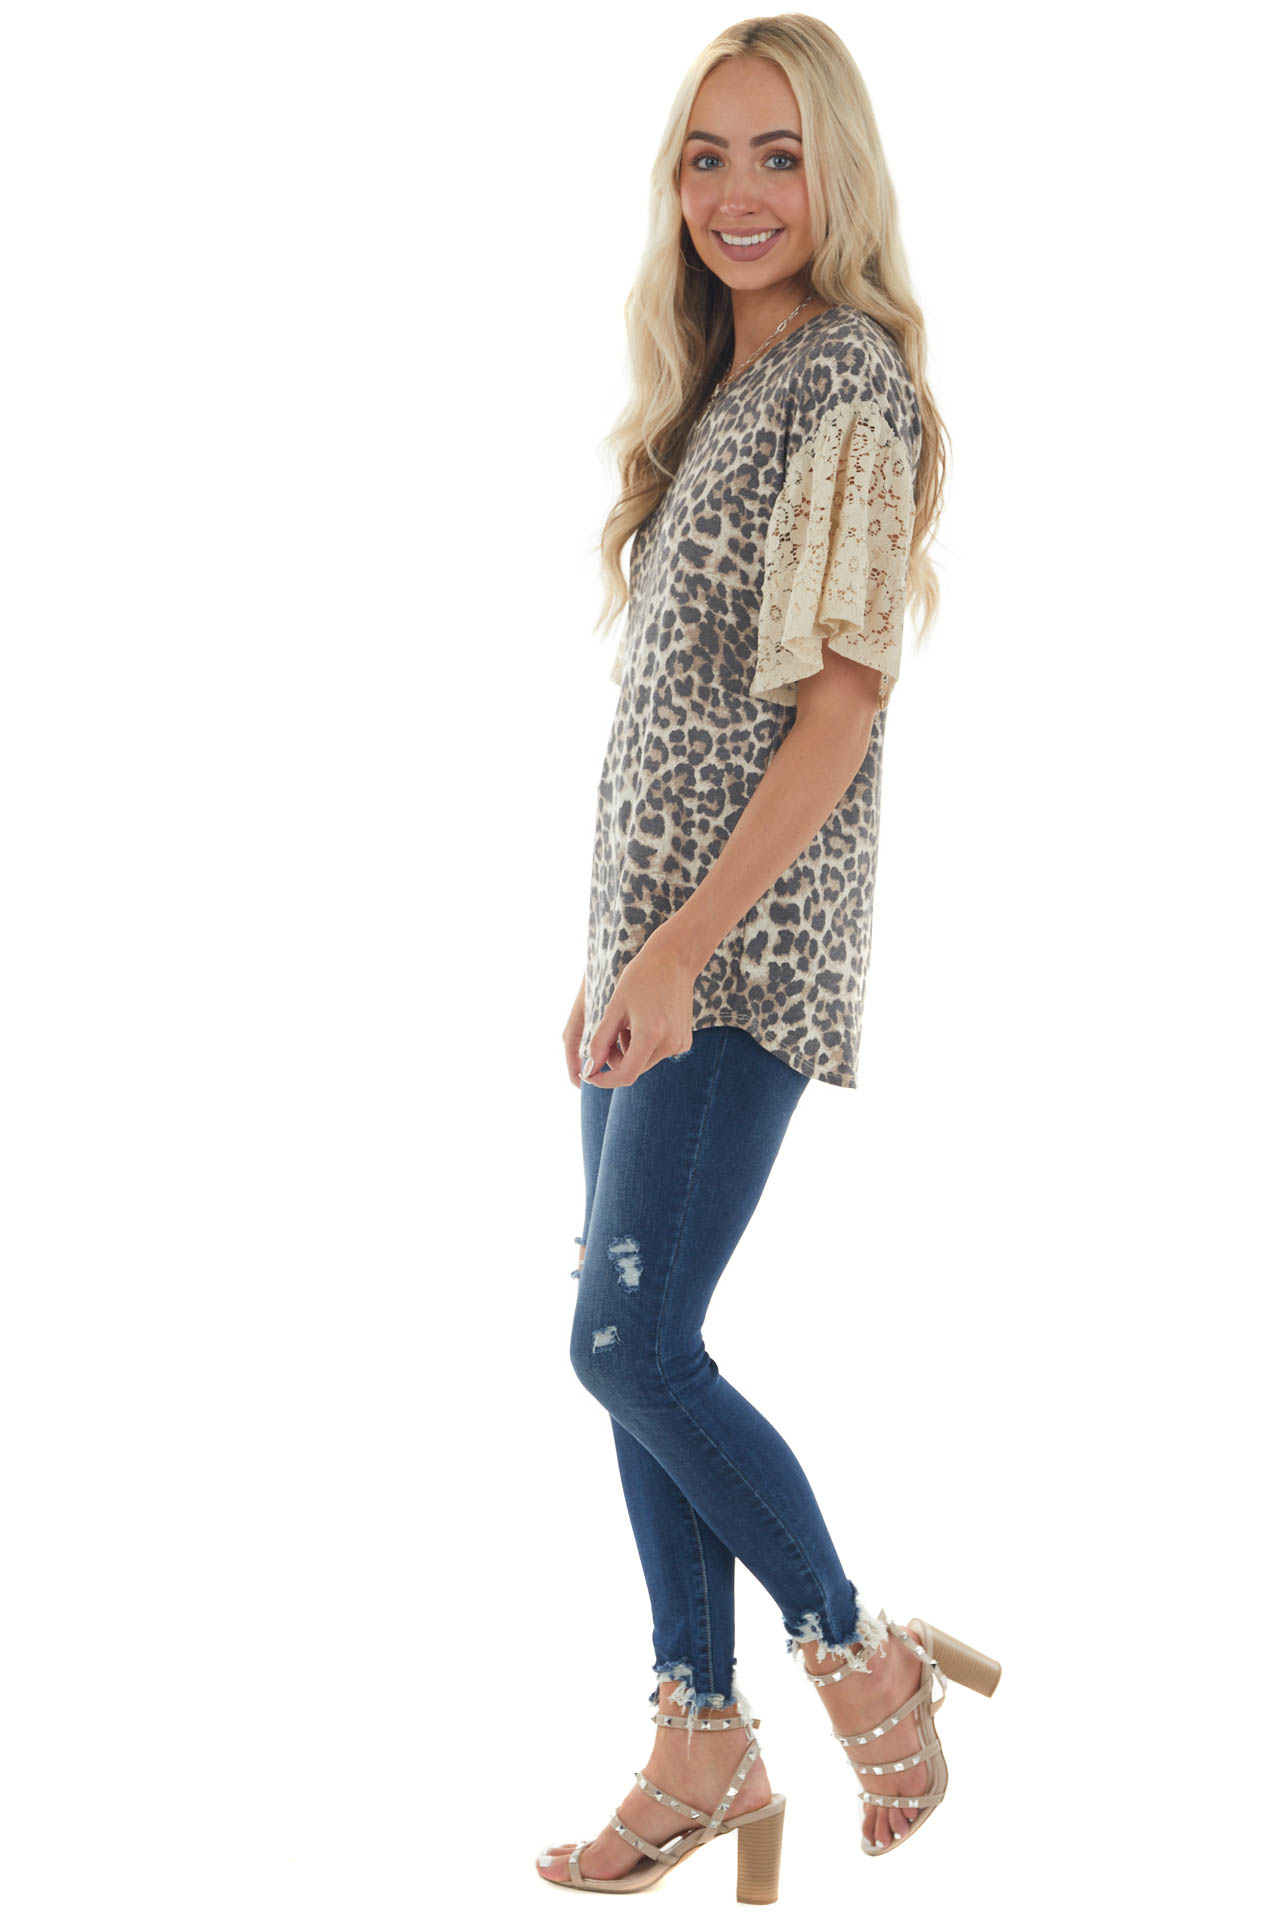 Latte Leopard Print Top with Short Floral Lace Bell Sleeves